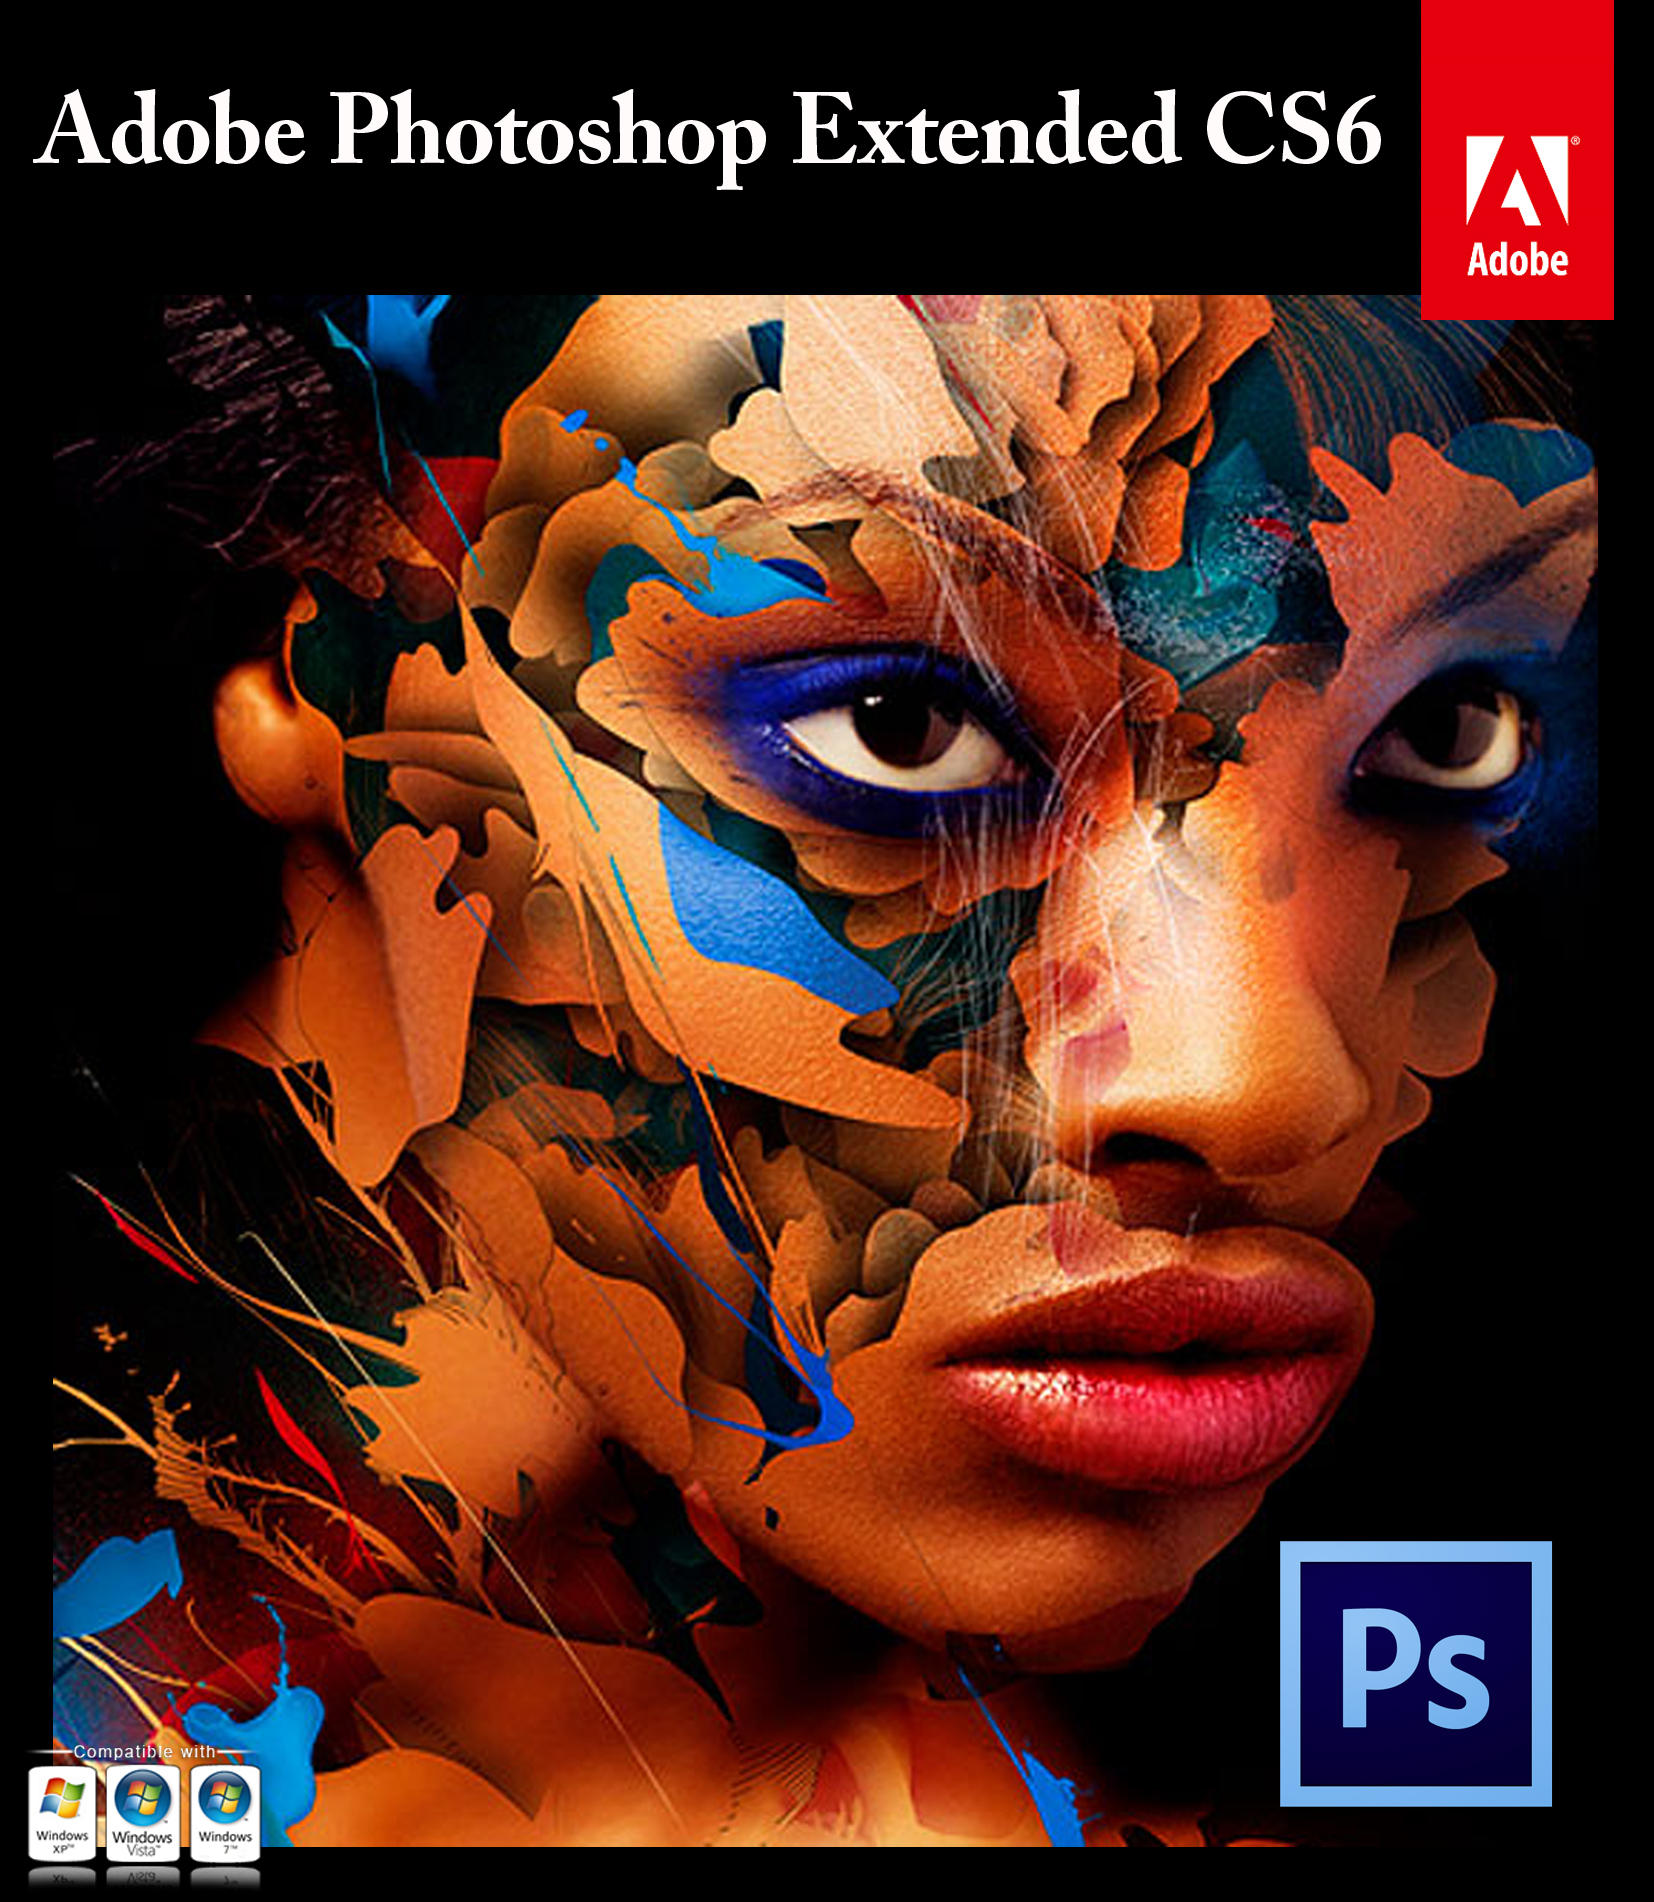 Adobe photoshop cs6 extended free download onesoftwares.